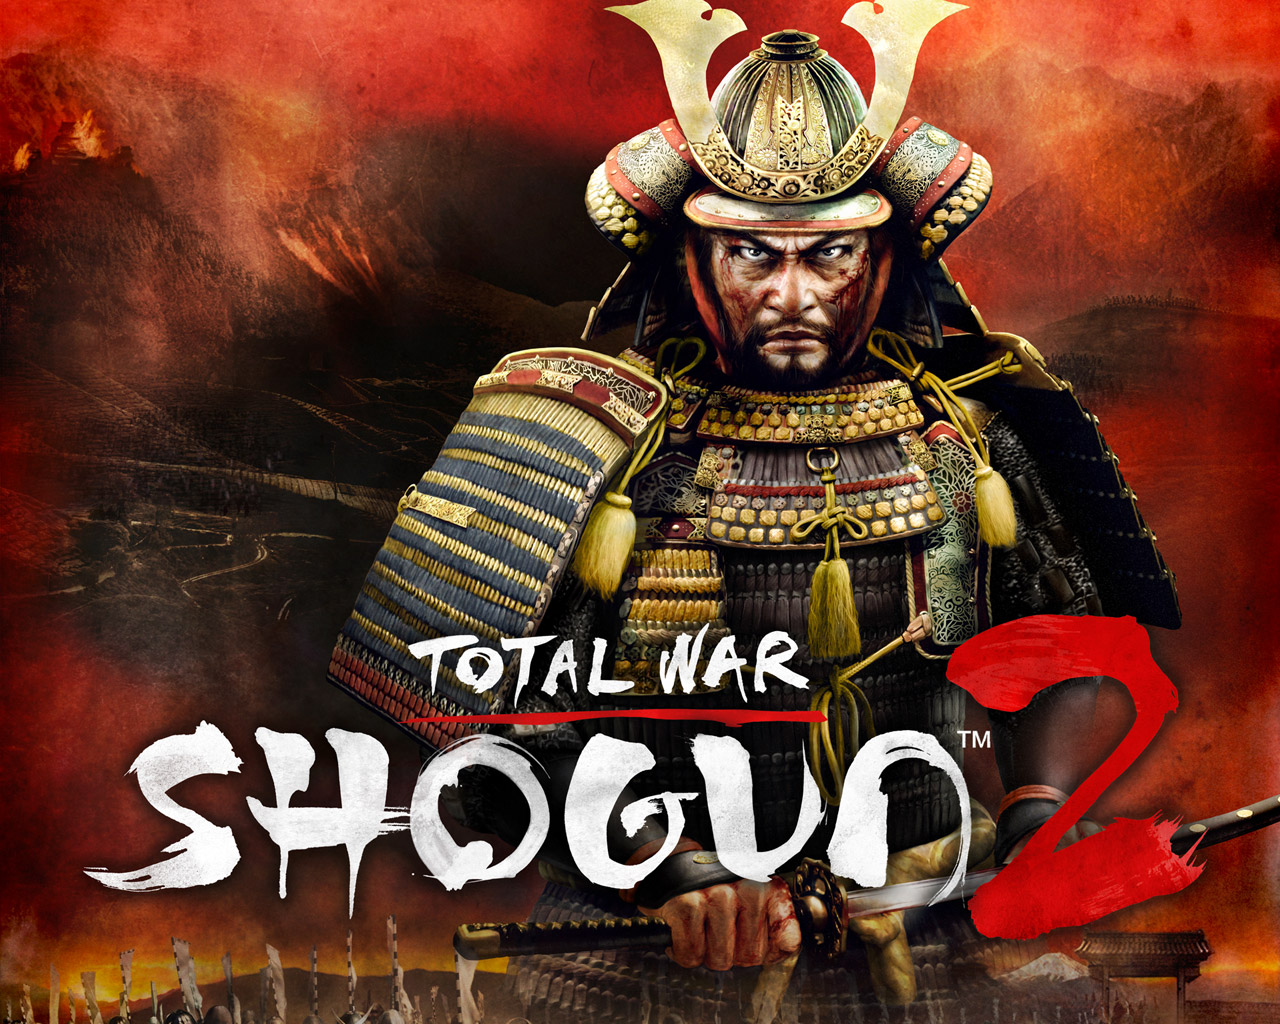 Free Total War: Shogun 2 Wallpaper in 1280x1024